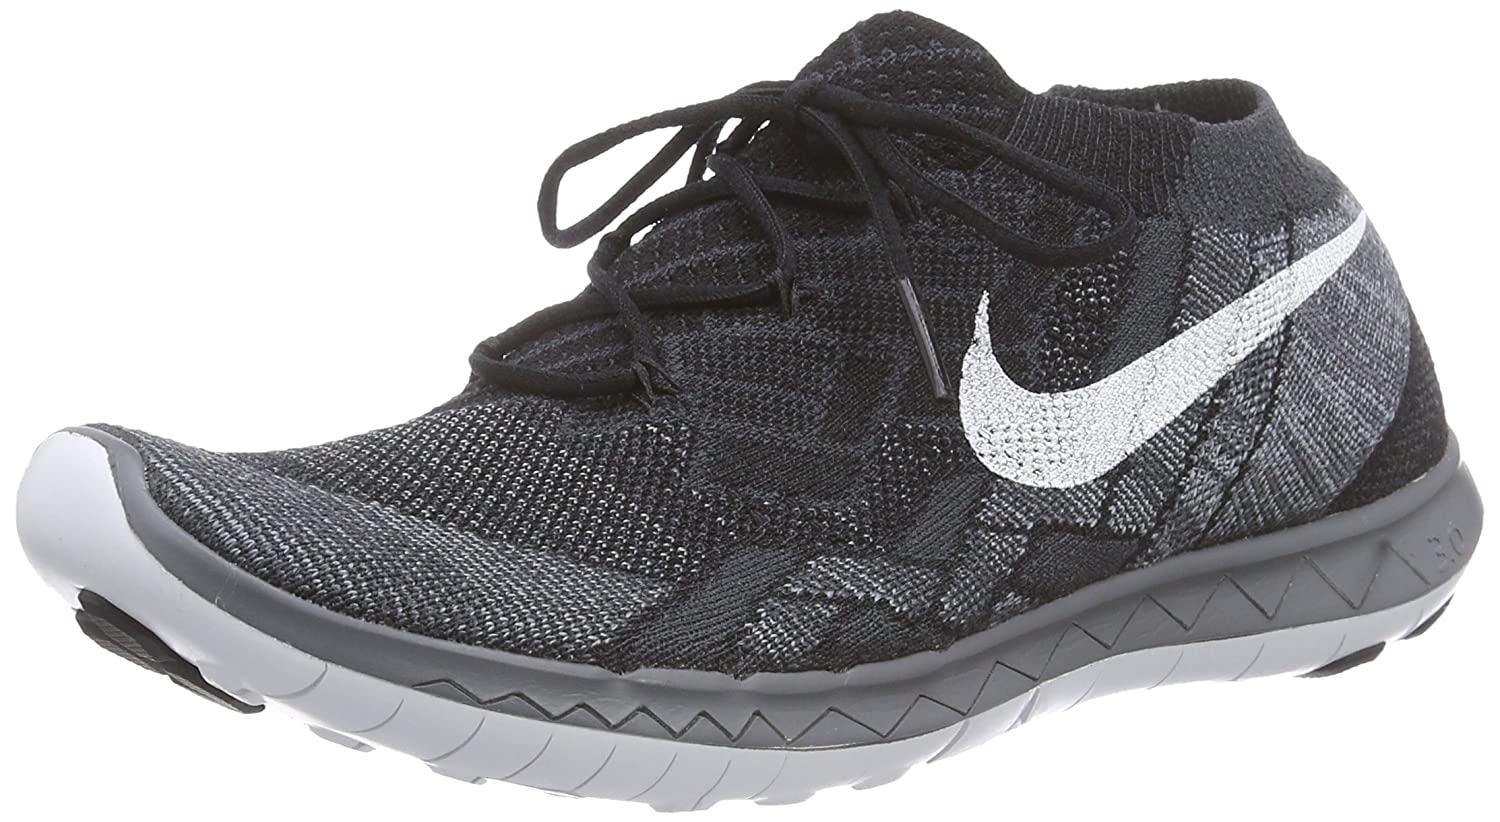 new product 834fa 6b667 Nike WMNS FREE 3.0 FLYKNIT womens running-shoes 718420 (7.5 B(M) US,  BLACK/WHITE-ANTHRACITE-DARK GREY)